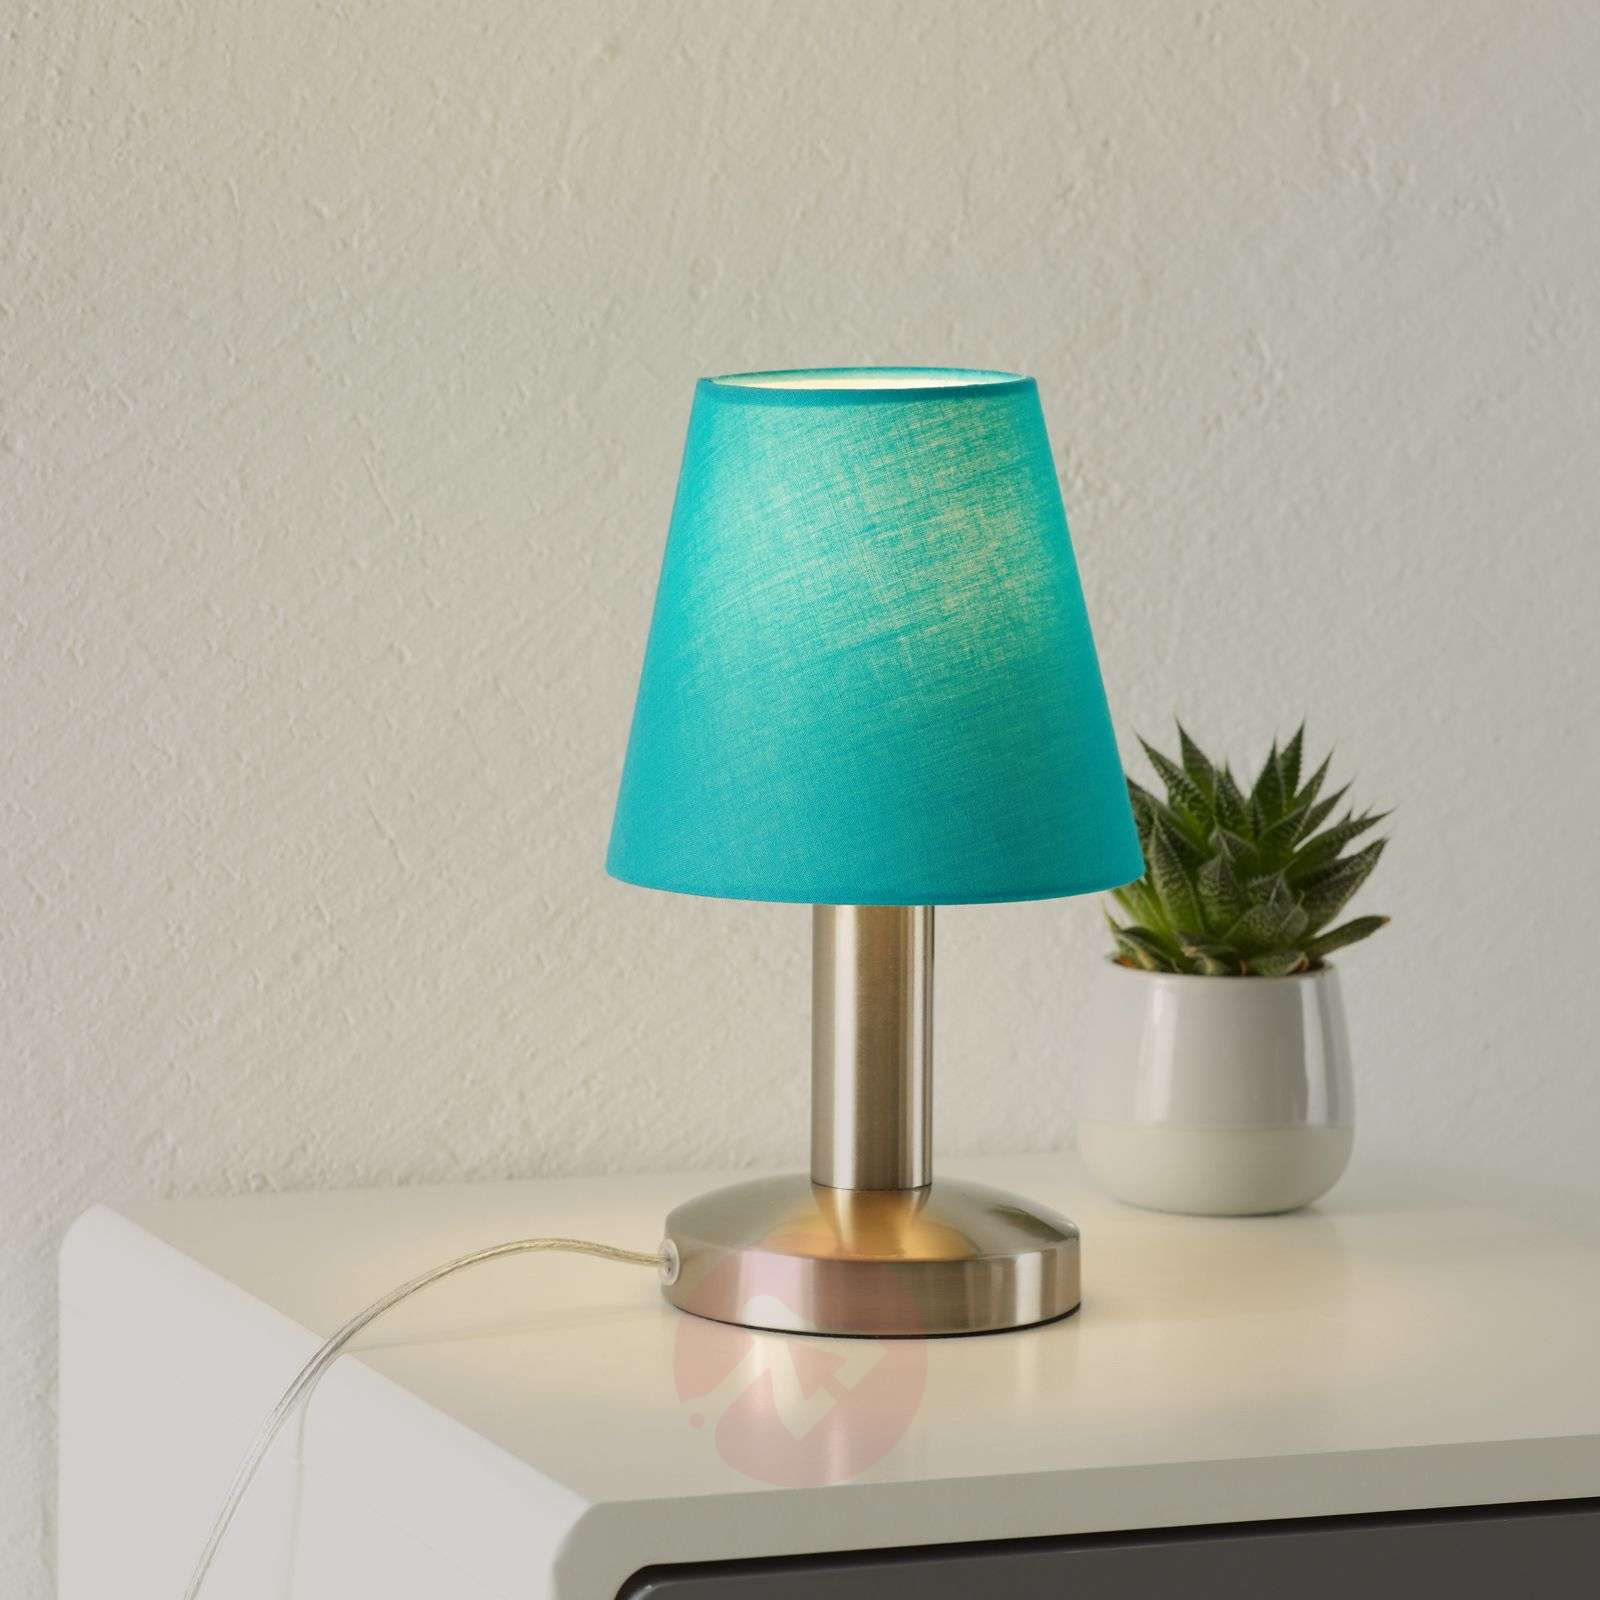 Merete table lamp with touch function, turquoise-9004612-01